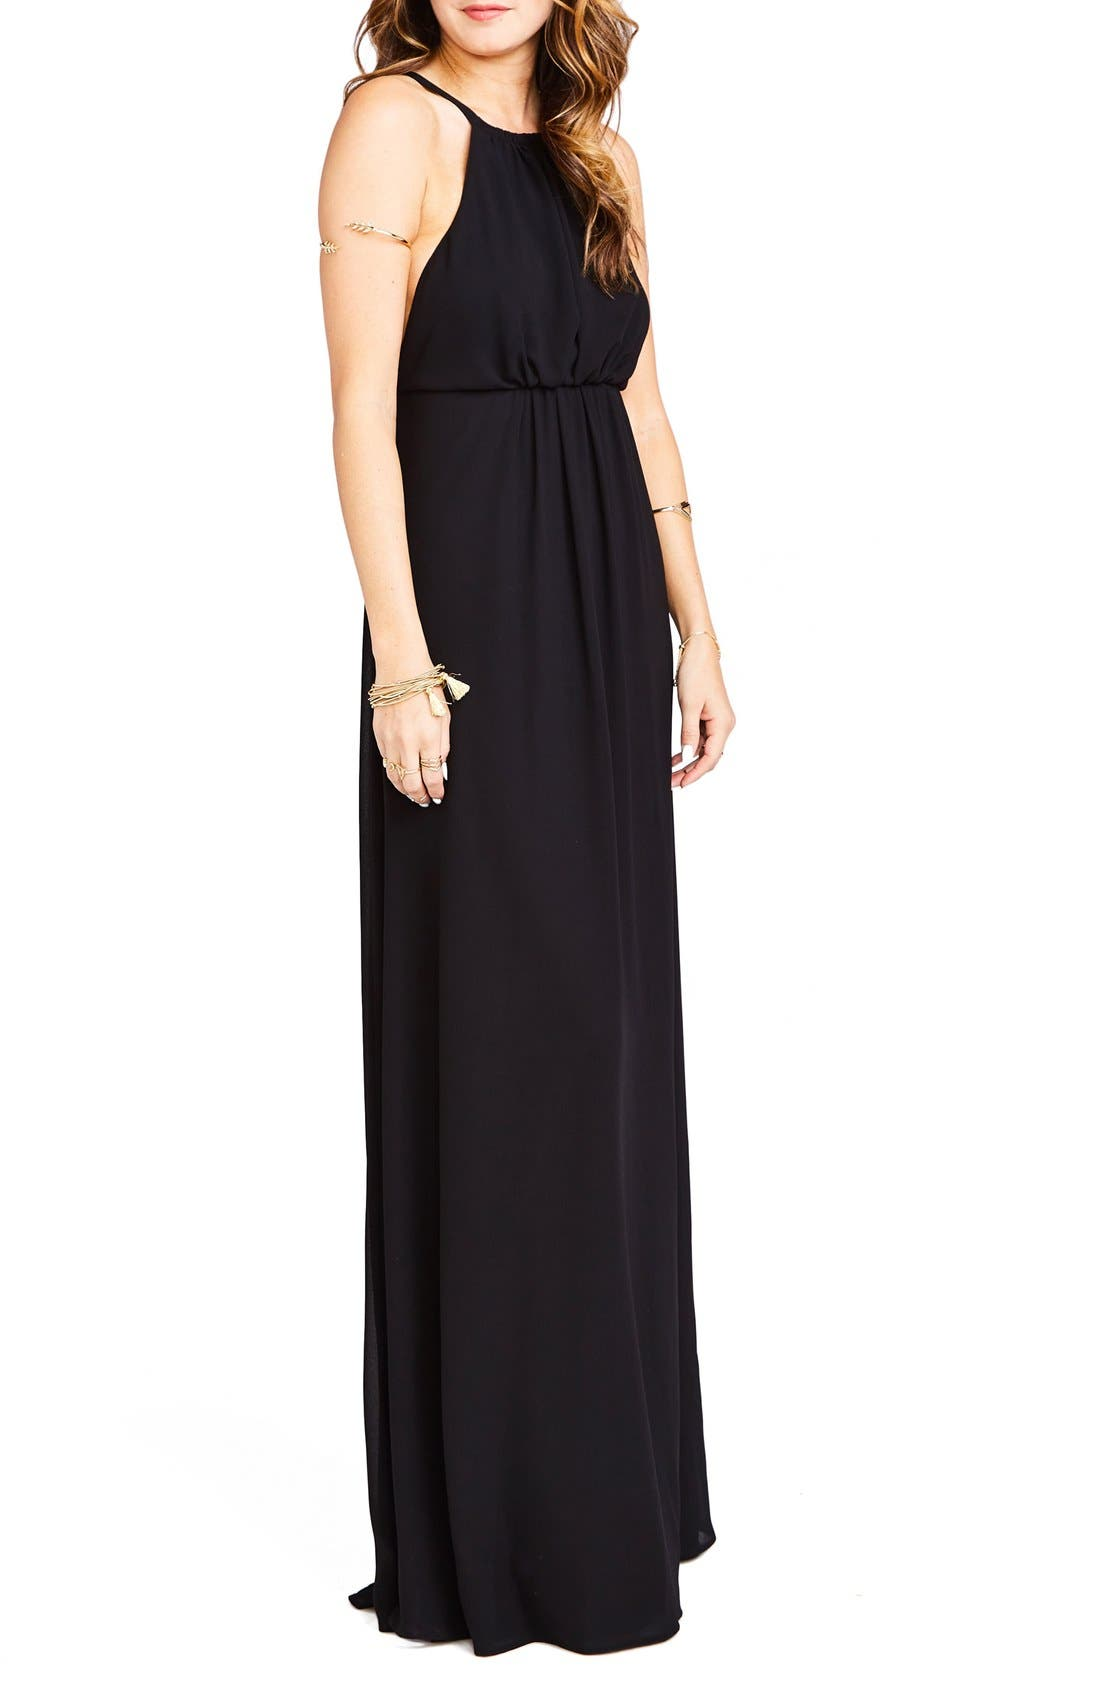 Amanda Open Back Blouson Gown,                             Alternate thumbnail 3, color,                             Black Chiffon